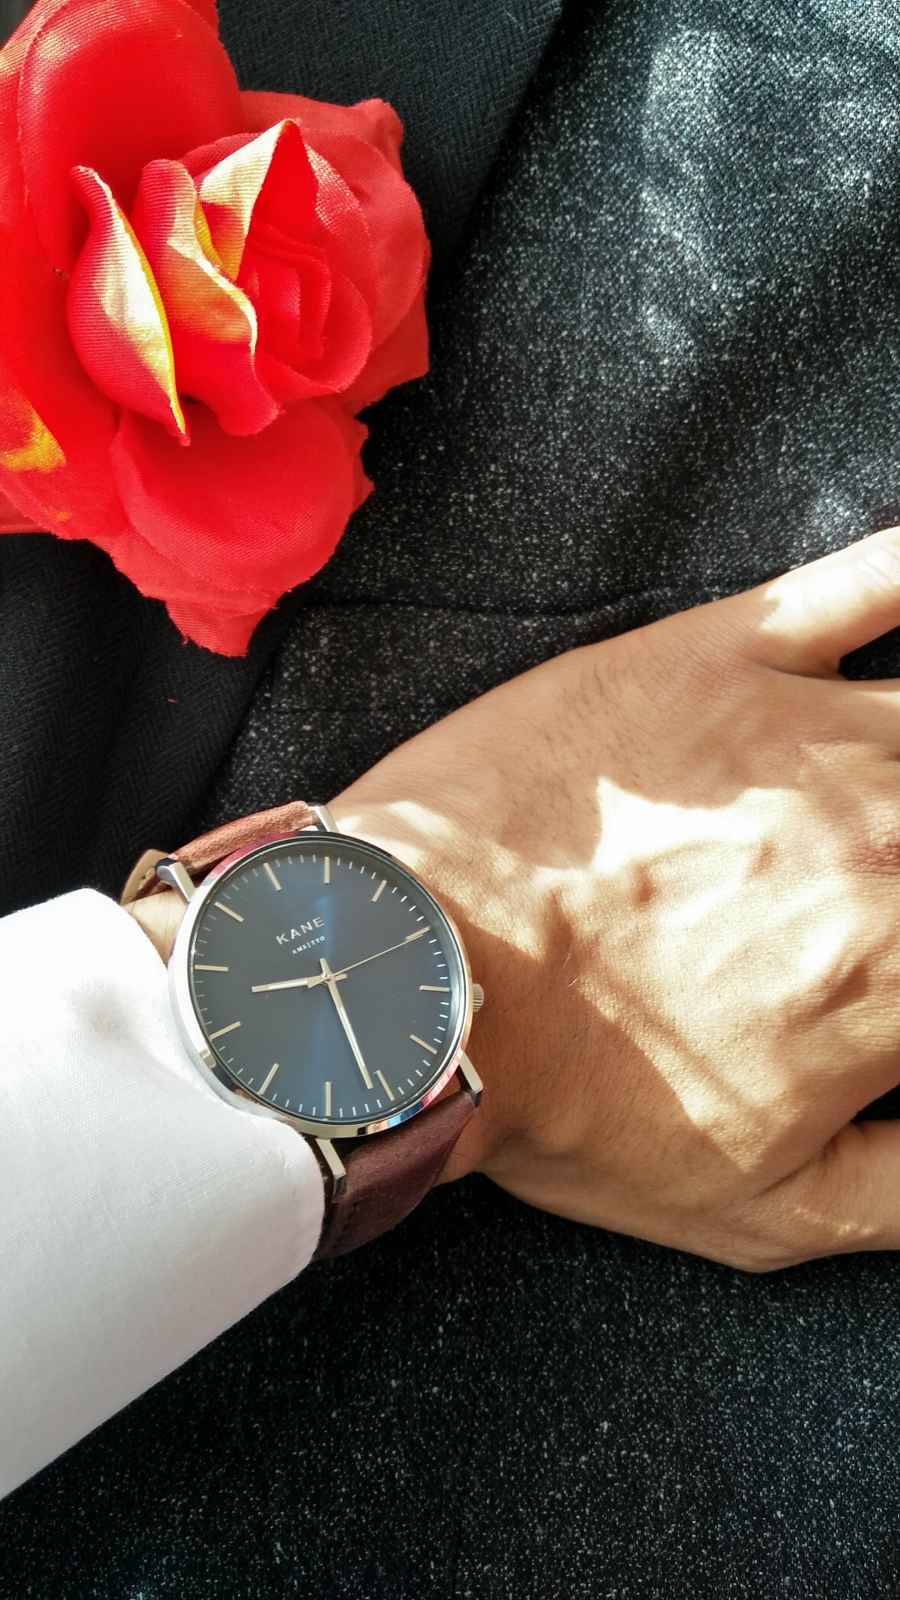 KANE Watches. The Perfect Gentleman's Watch